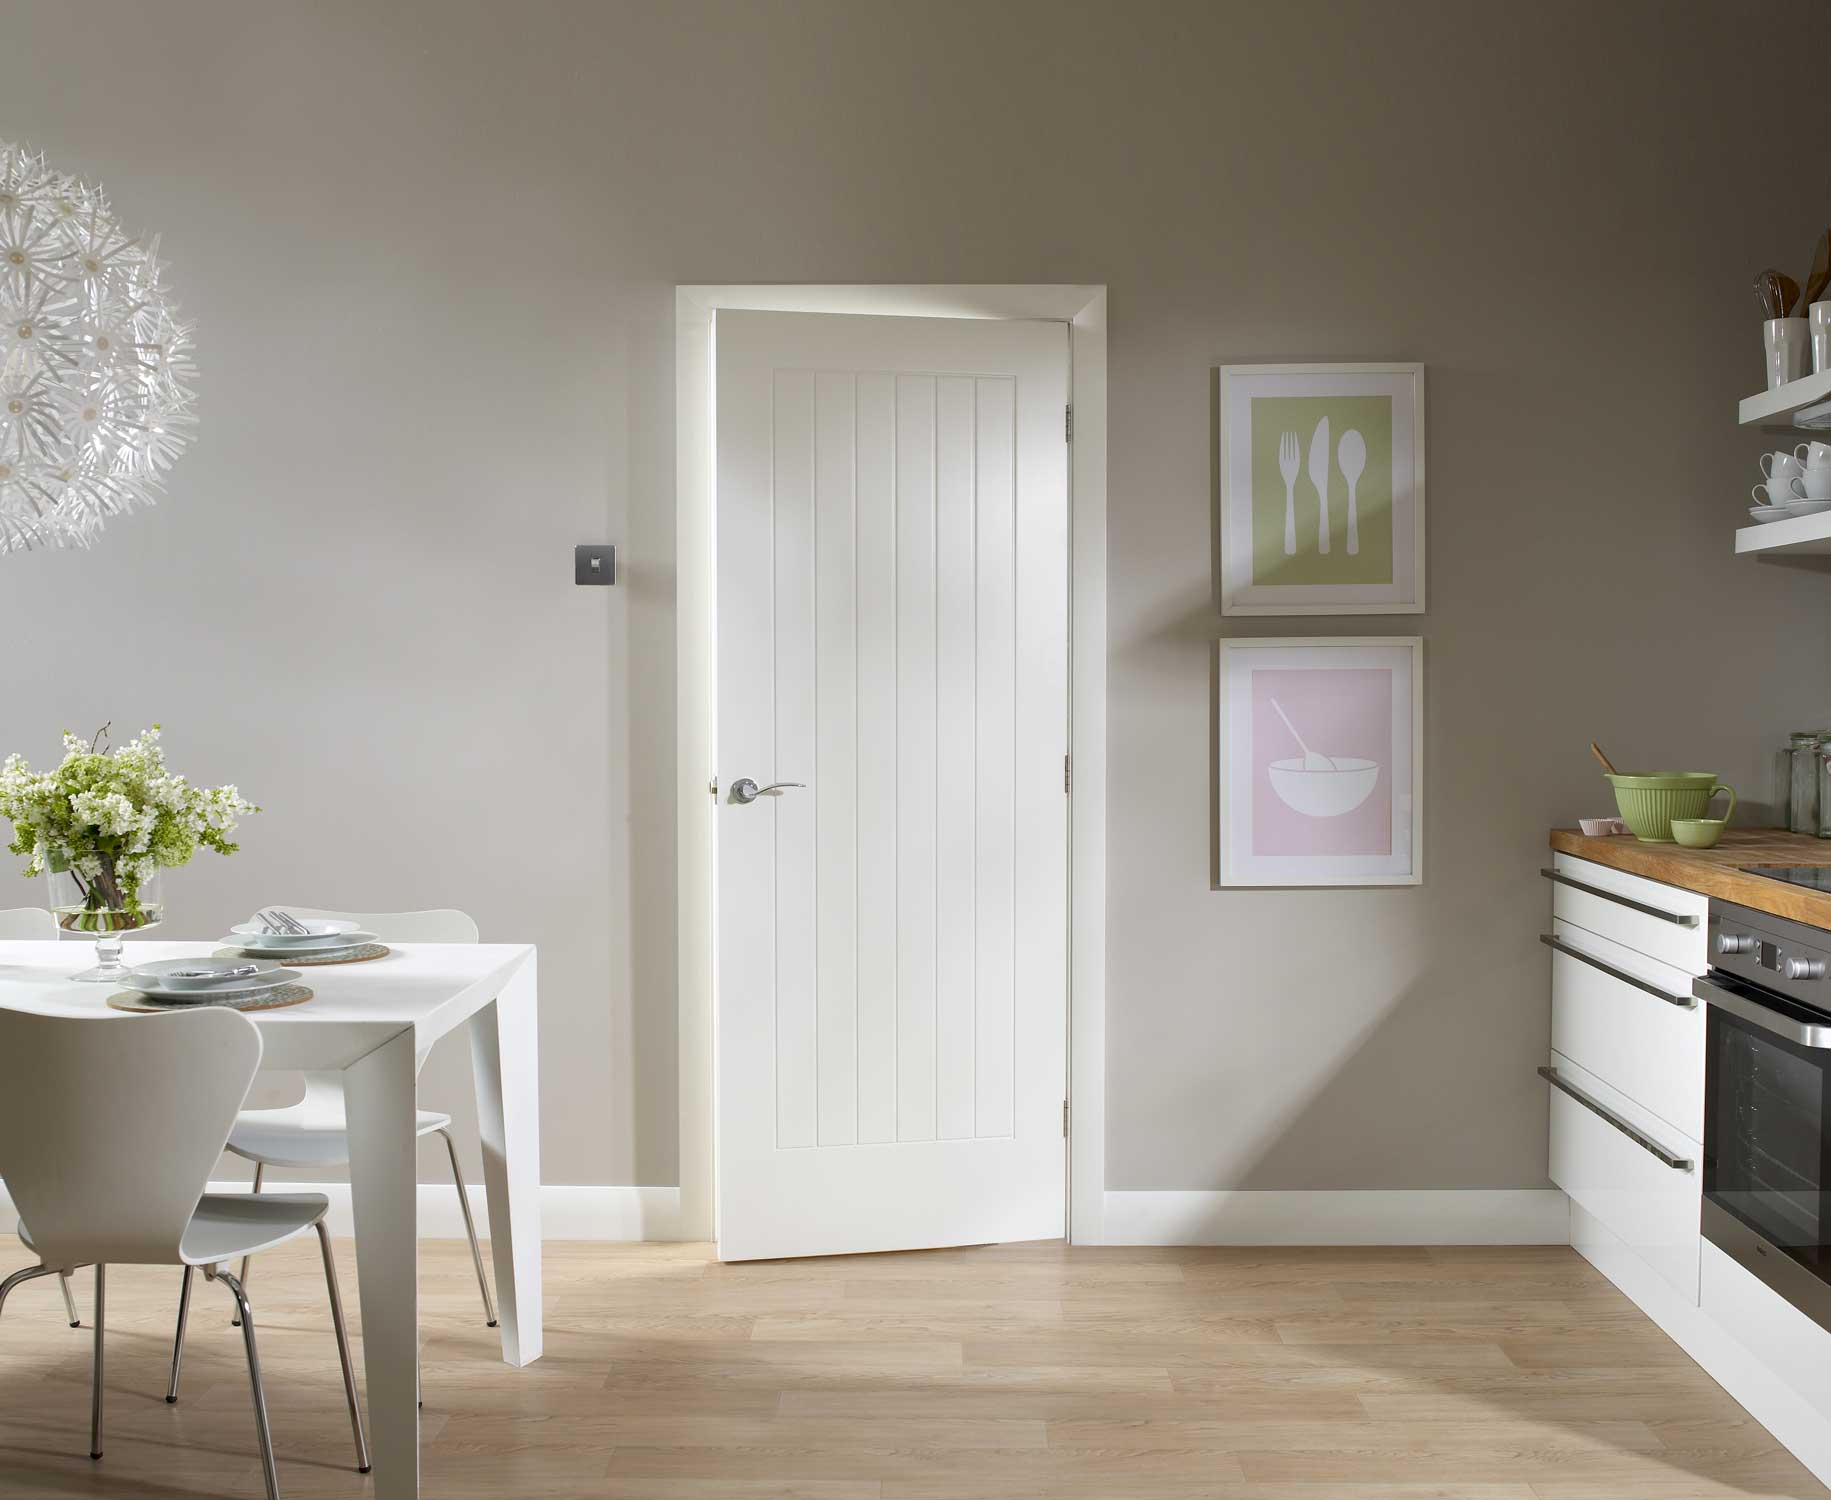 Solid Wood Interior Doors White Make Any Room Visually Bigger And